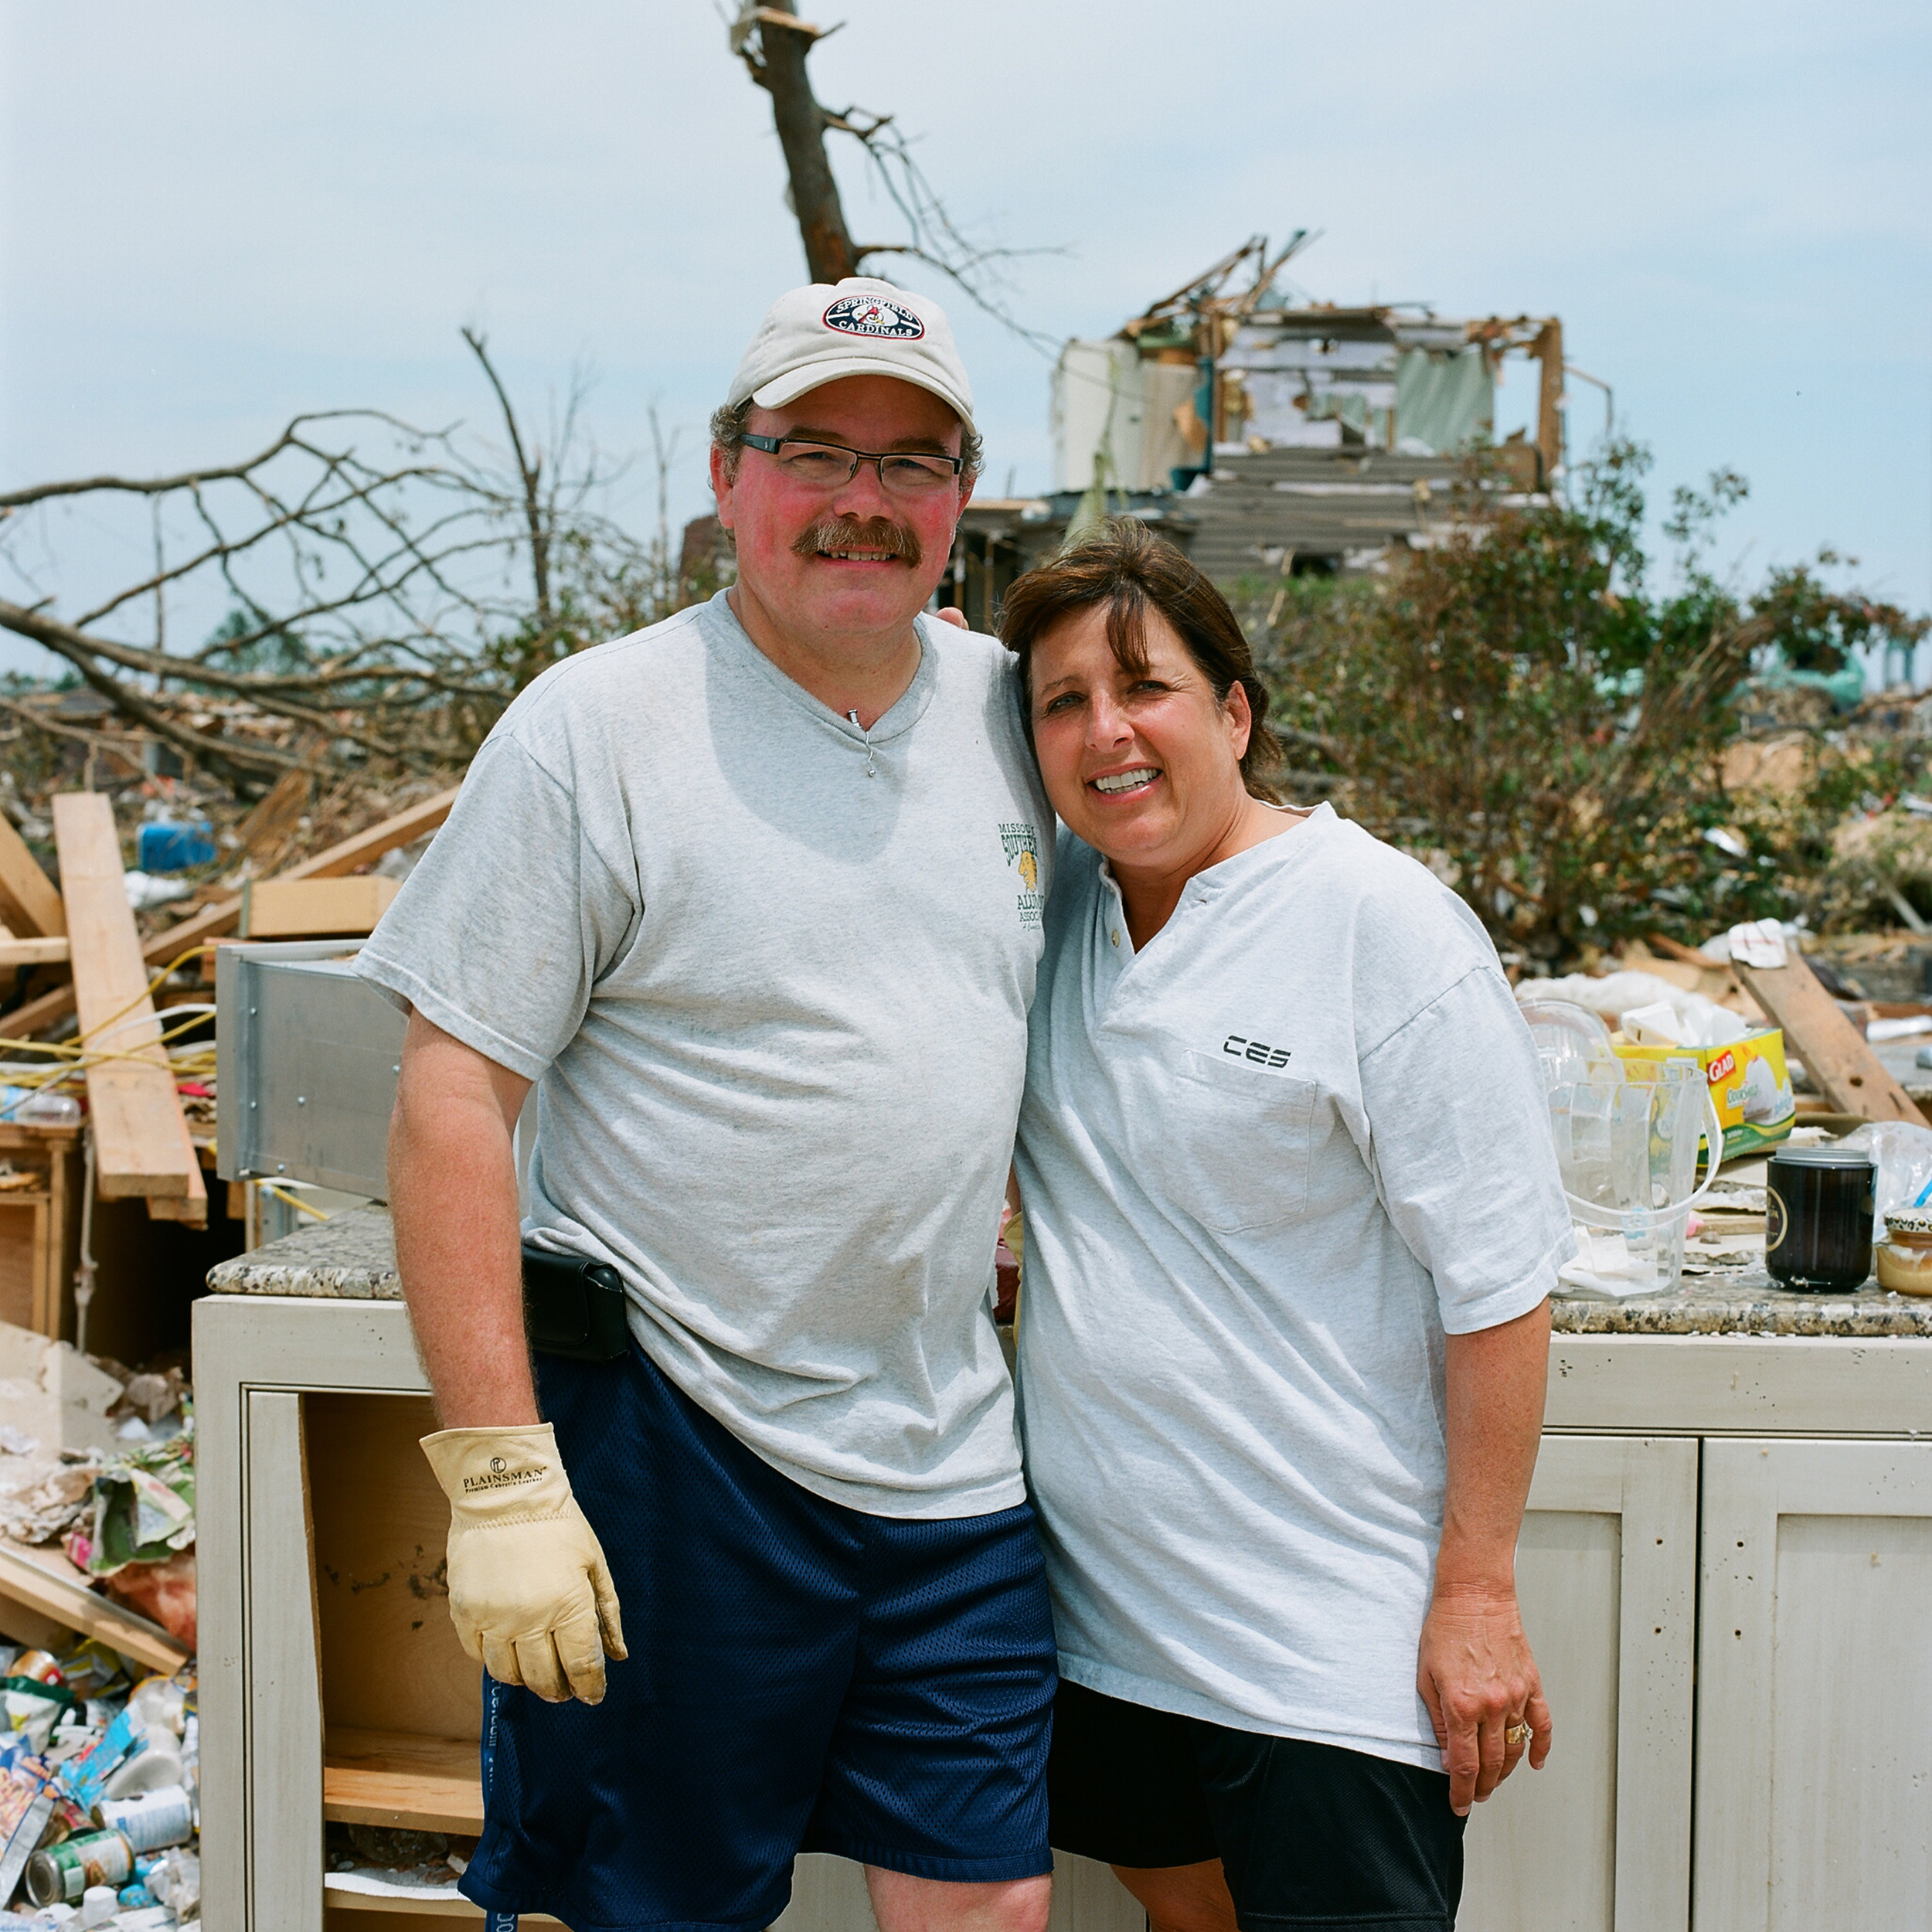 - NICOLETTE AND HER HUSBANDtheir family narrowly avoided the tornado by escaping into their basement, mere moments before the tornado struck. her daughter's boyfriend, will norton, perished while driving home from HIS high school graduation.